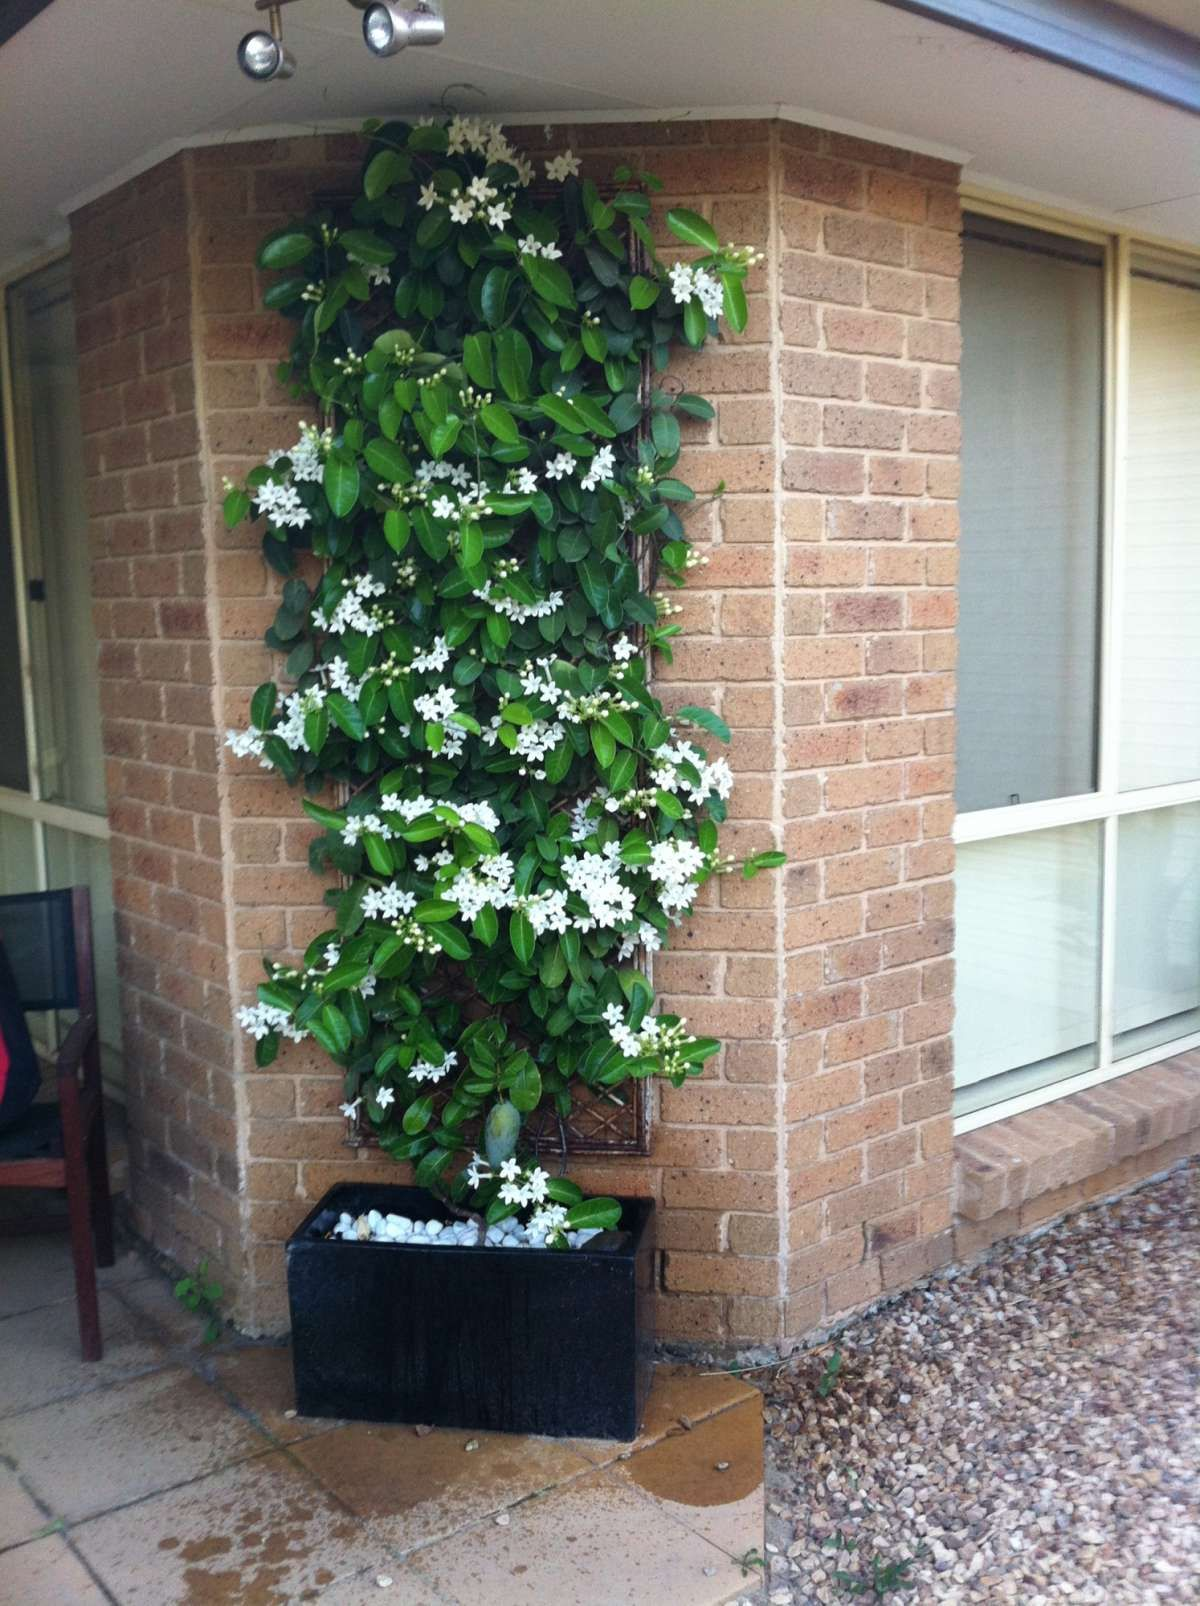 Jasmine Terrace: Stephanotis Floribunda, Madagascar Jasmine Used As A